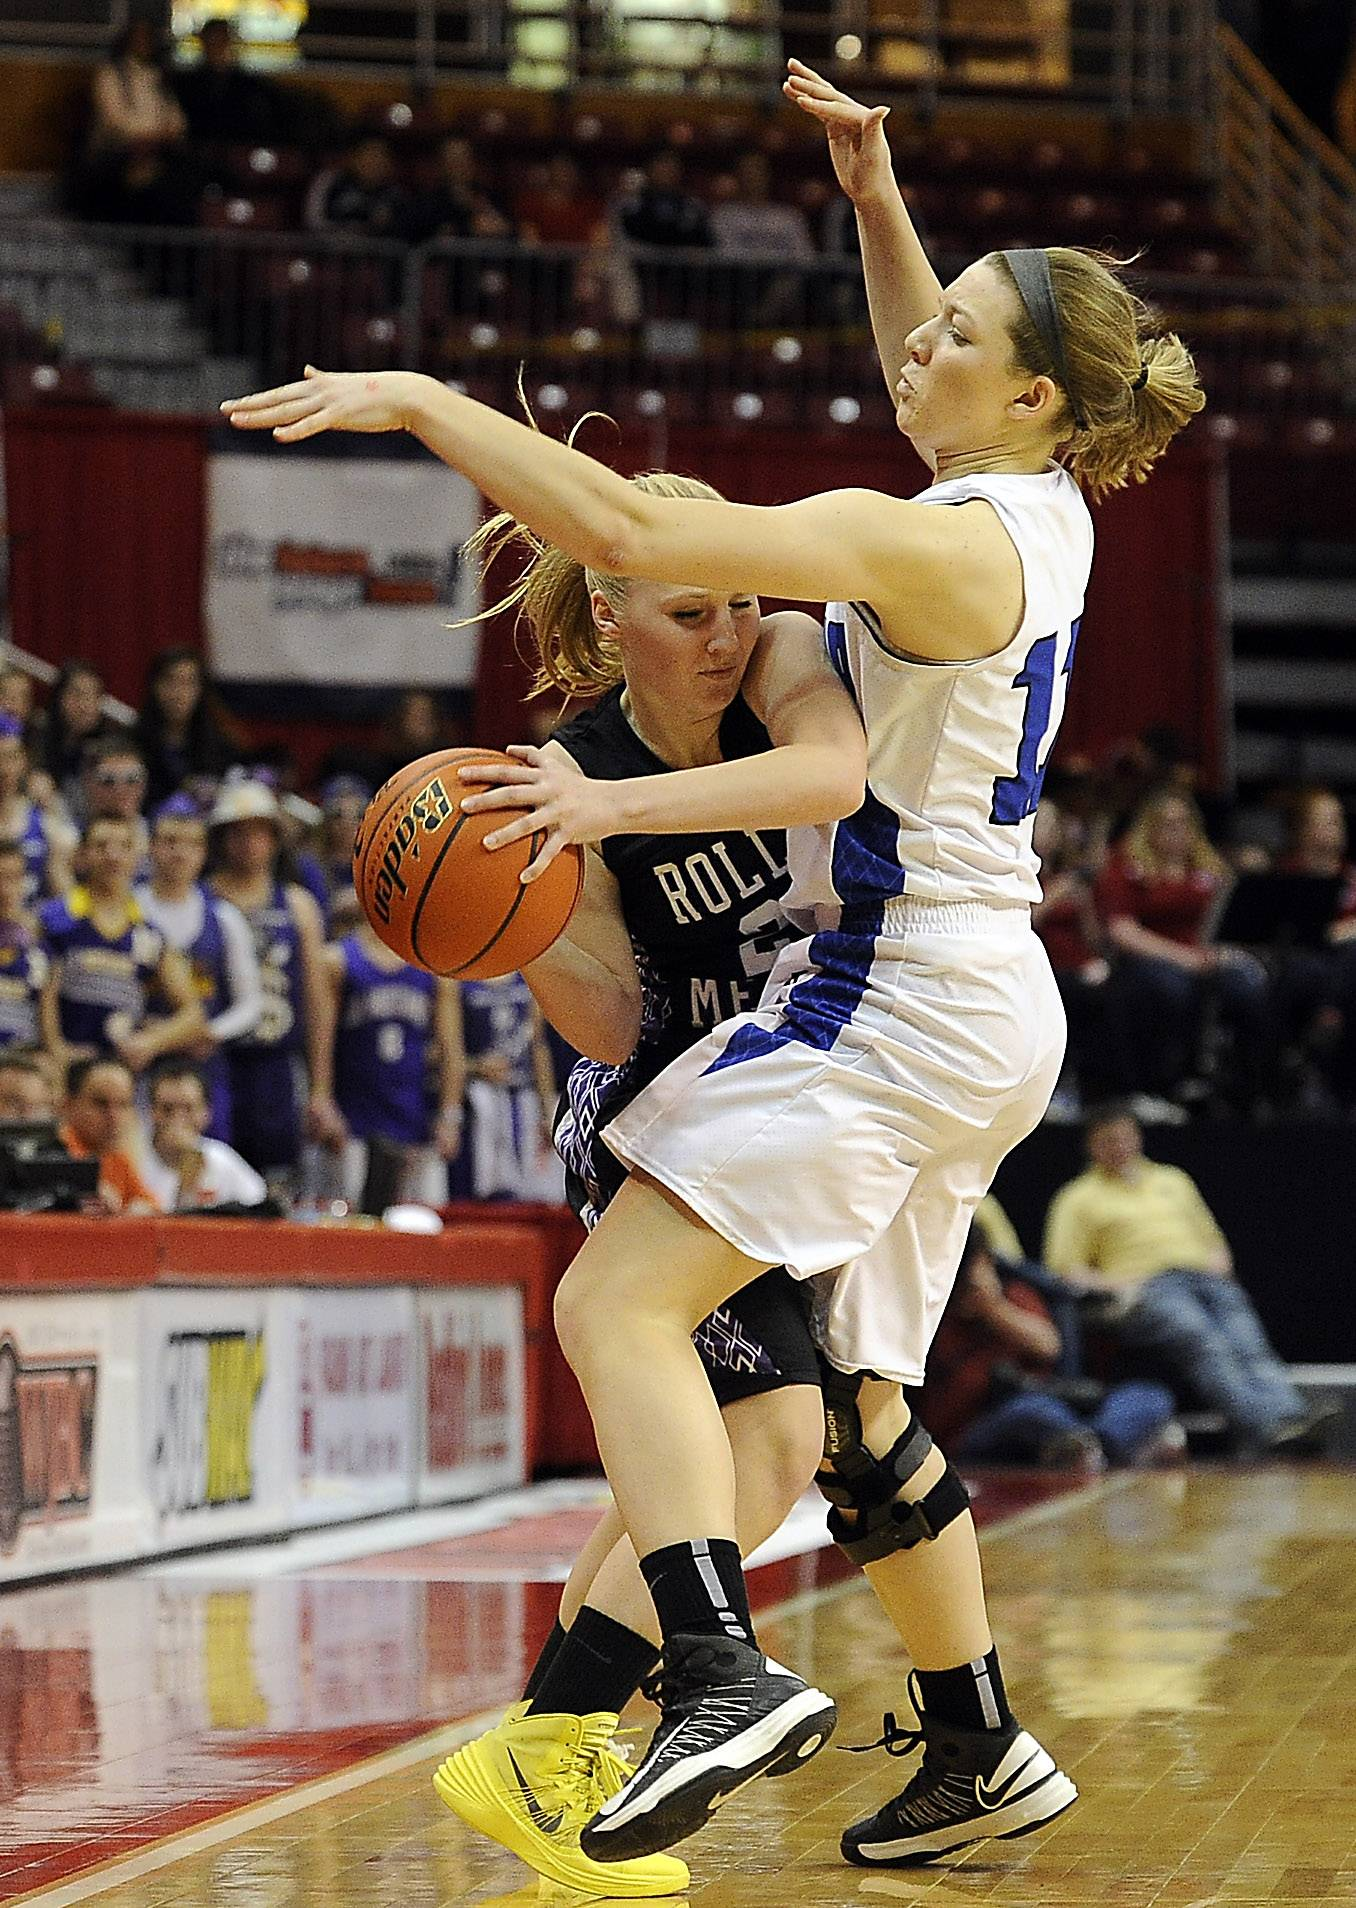 Geneva's Michaela Loebel fouls Rolling Meadows' Allie Kemph in the second half of the Class 4A state semifinals in Normal on Friday.